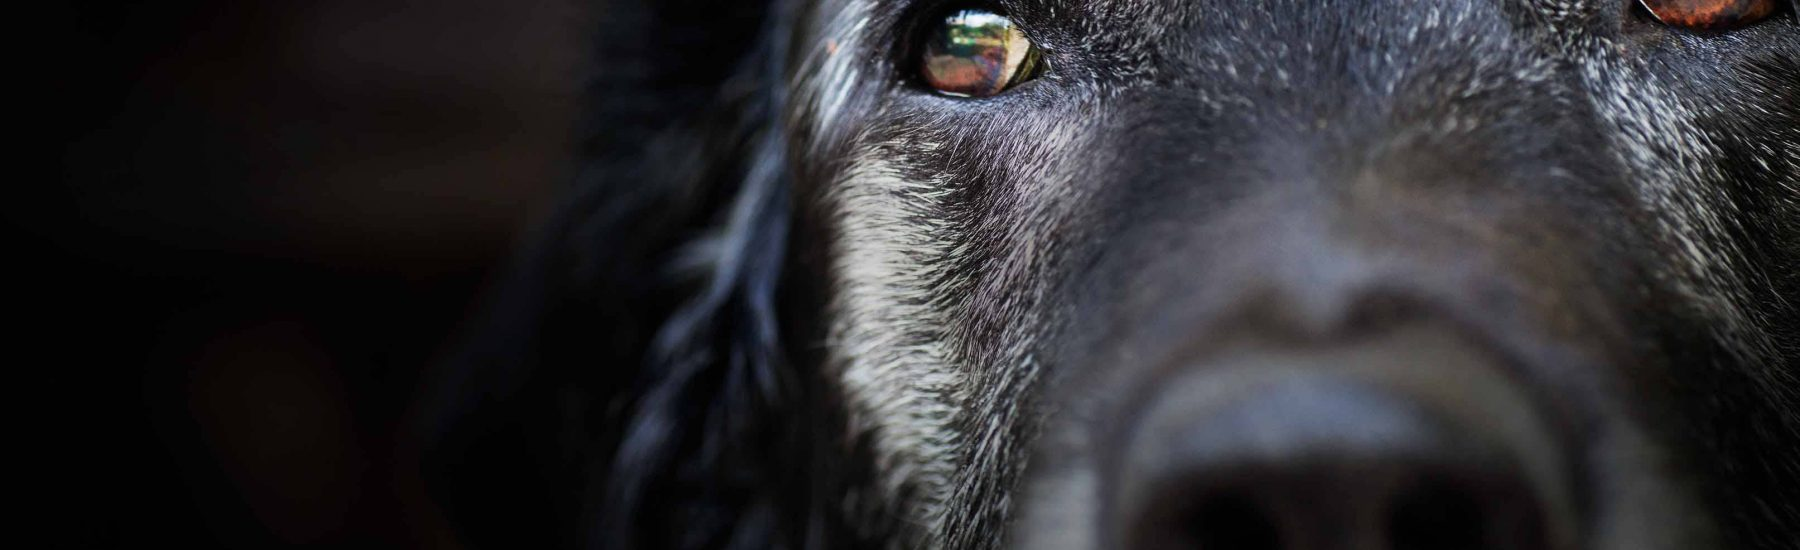 Close up of a black dog